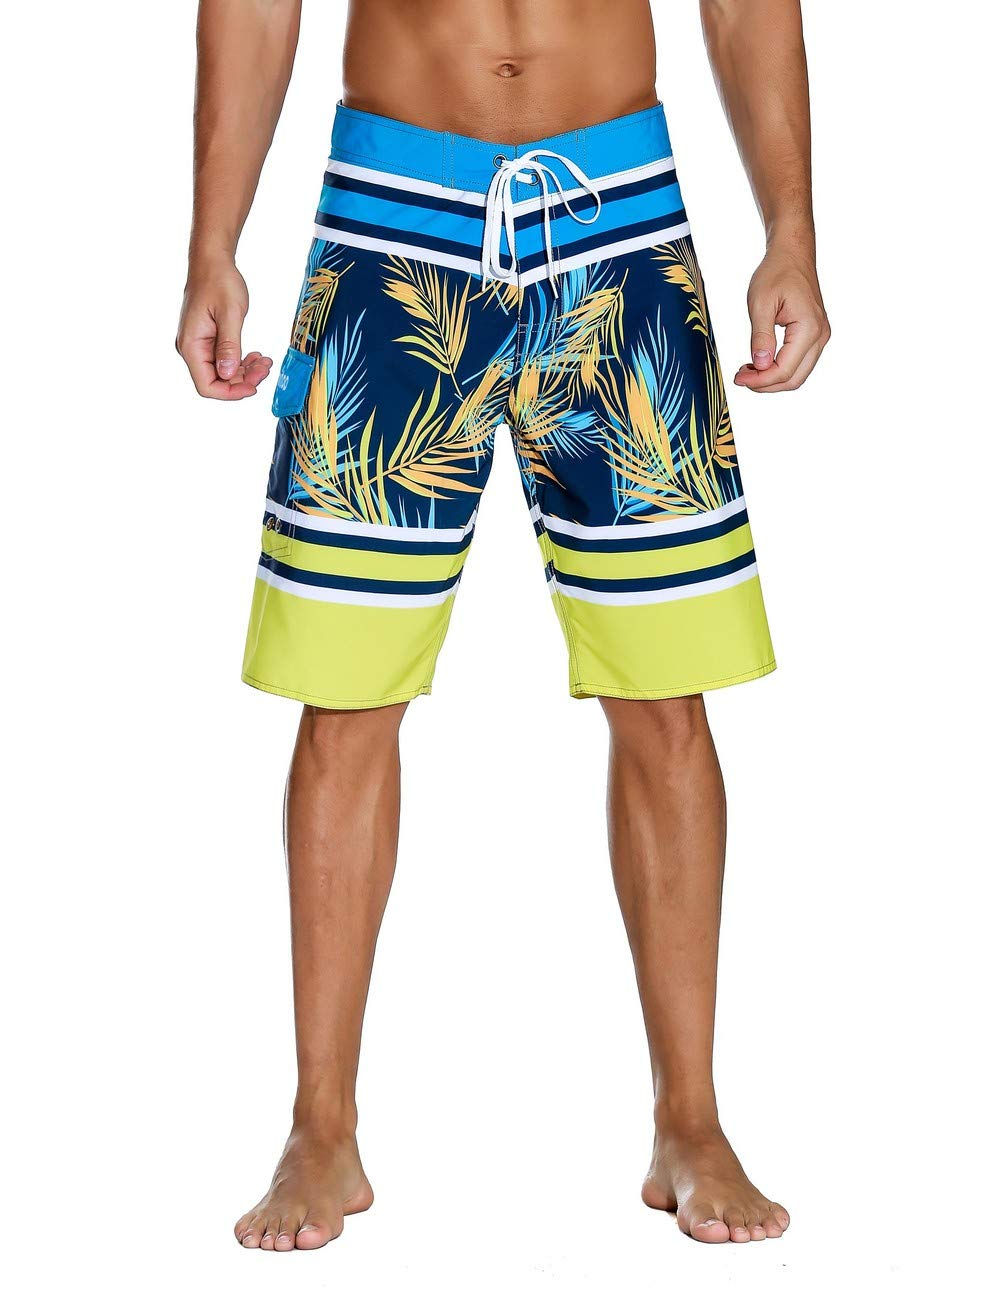 Unitop Surfing Shorts Quick Yellow